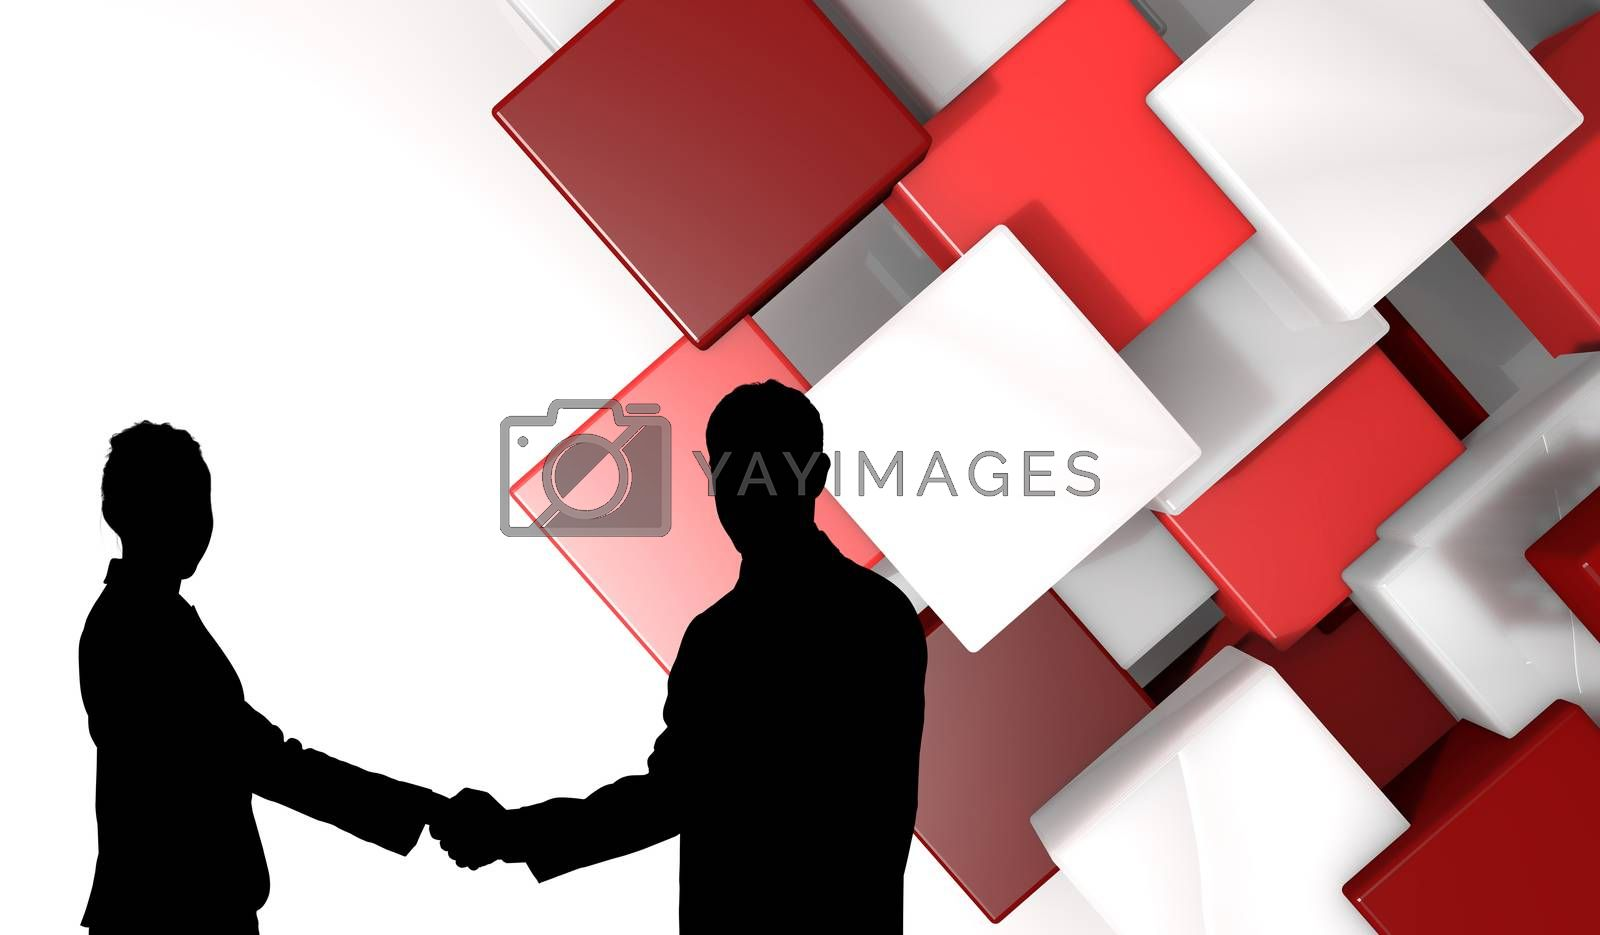 Smiling business people shaking hands while looking at the camera against abstract tile design